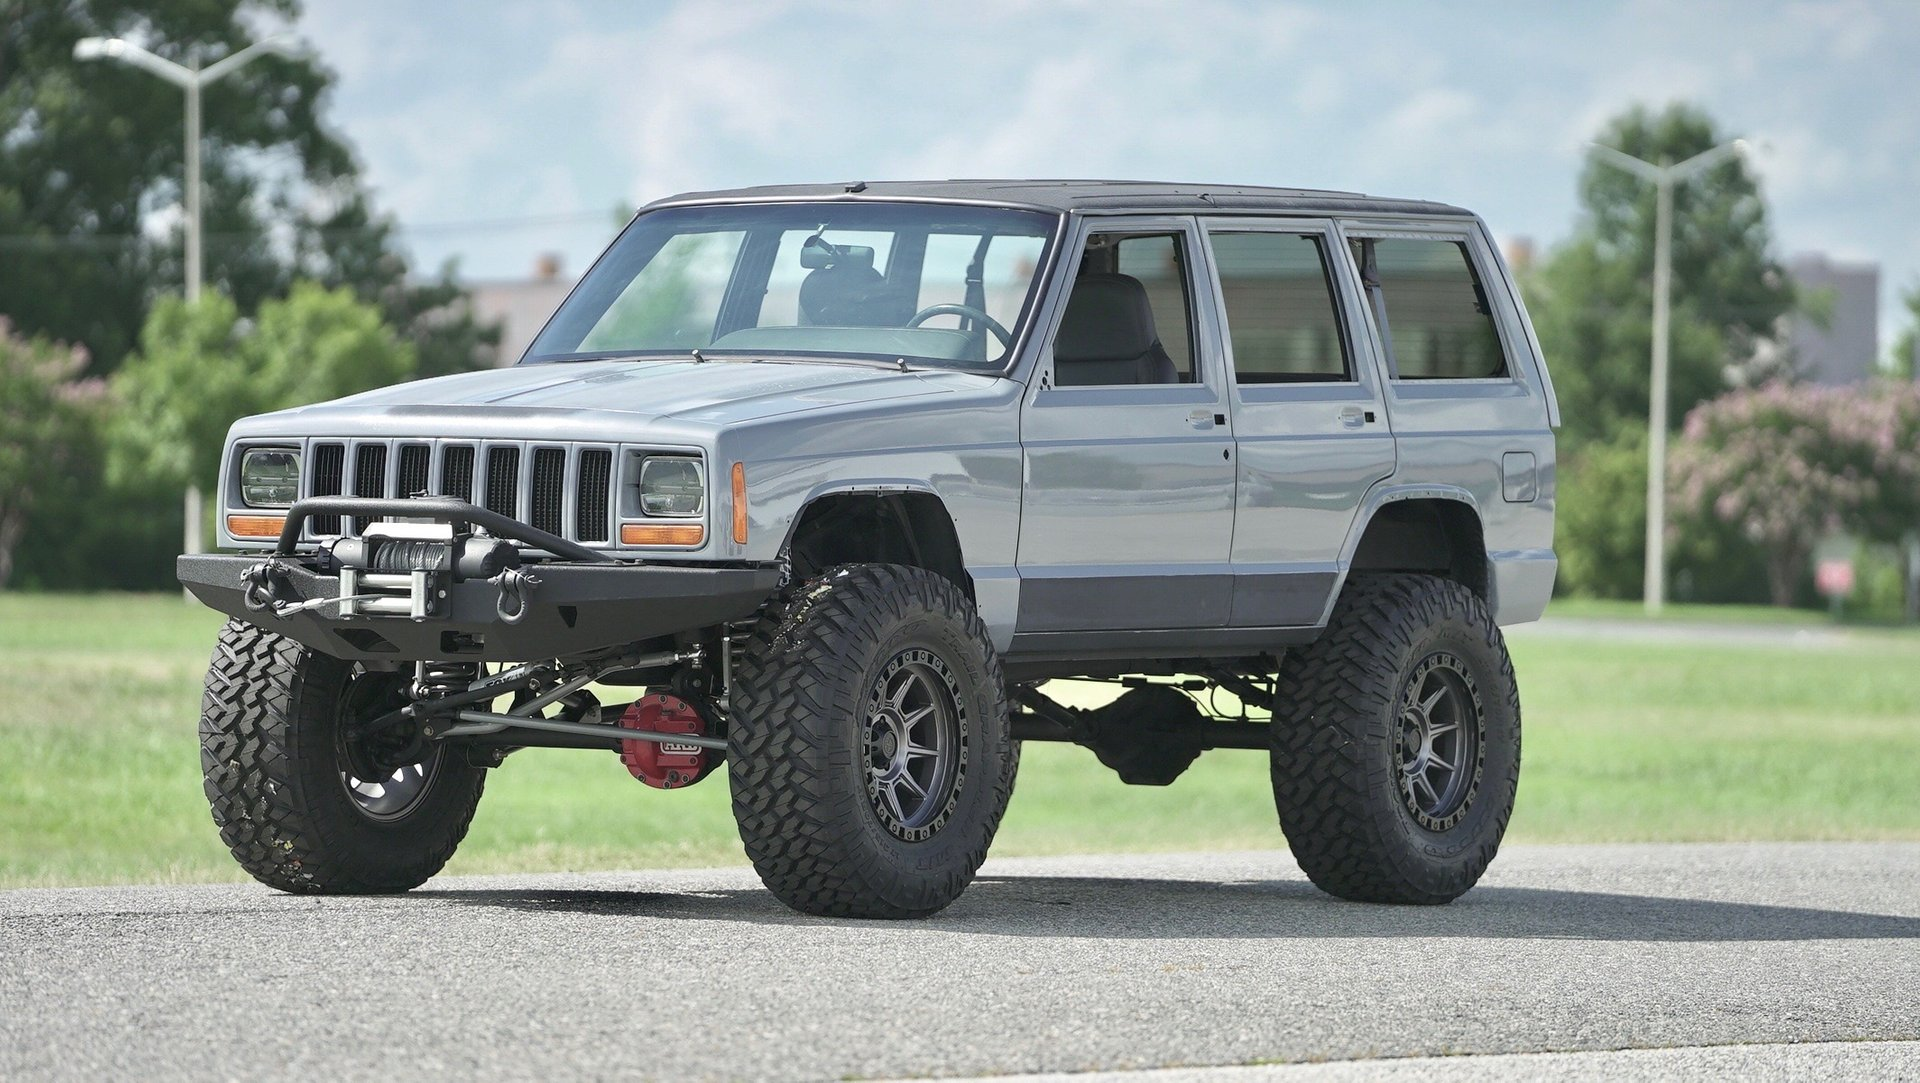 2000 jeep cherokee restored stage 6 build